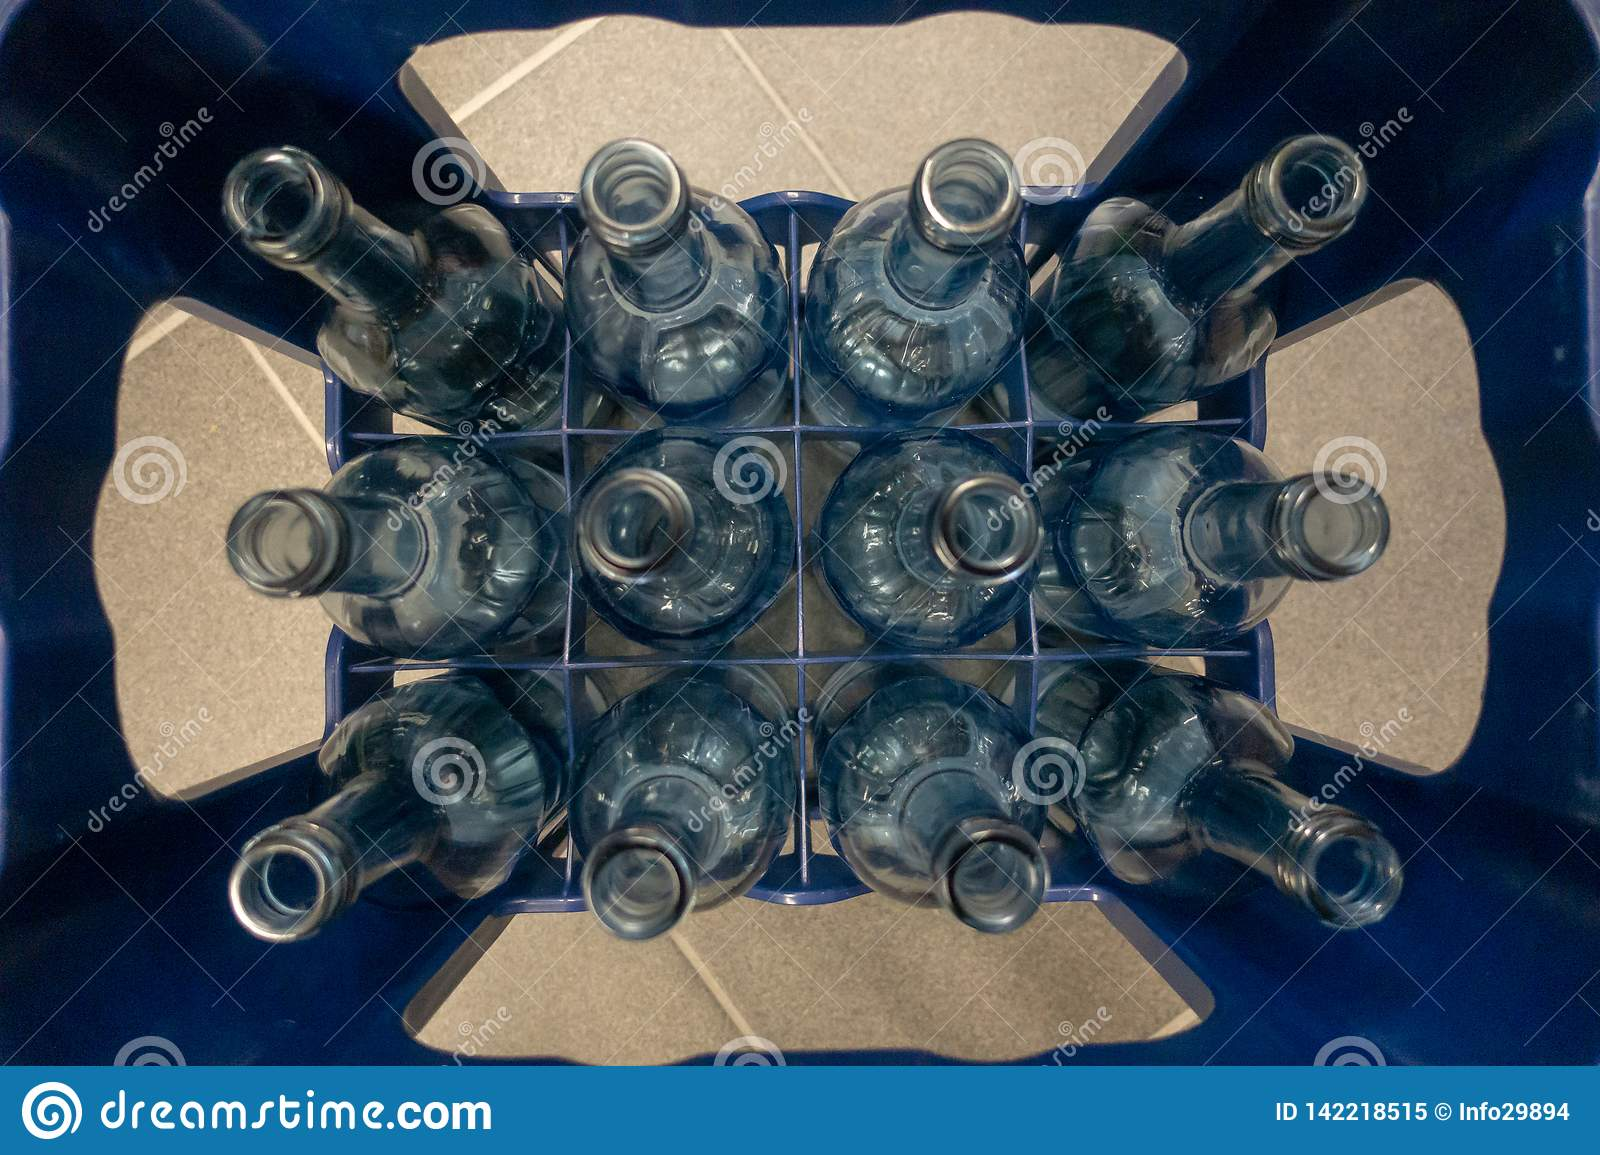 A crate with empty glass bottles